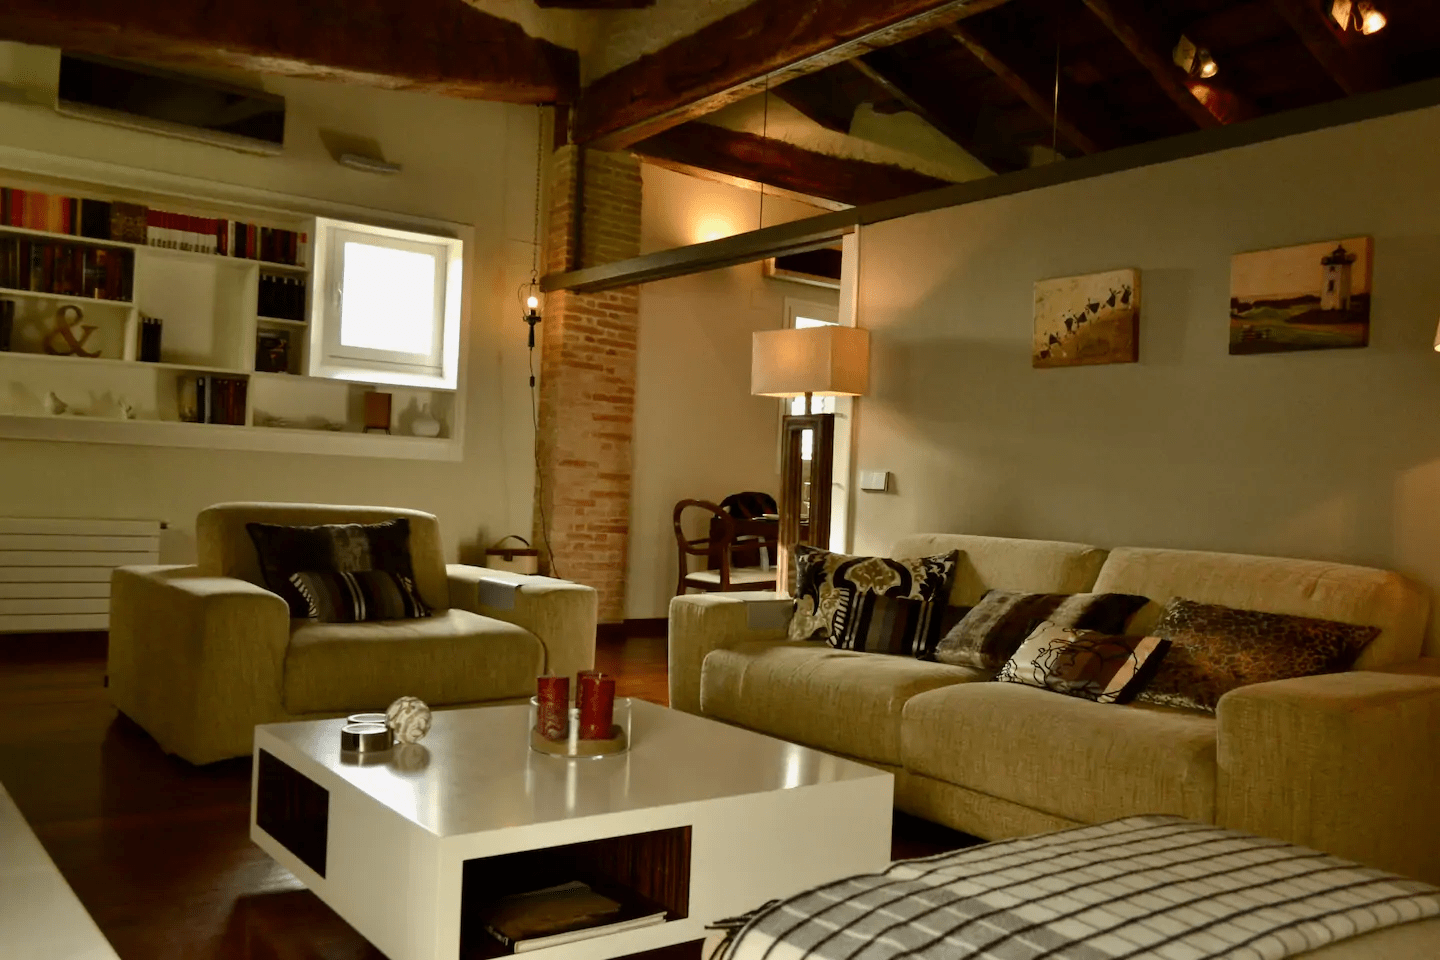 2 bedroom apartment in Valencia for expats